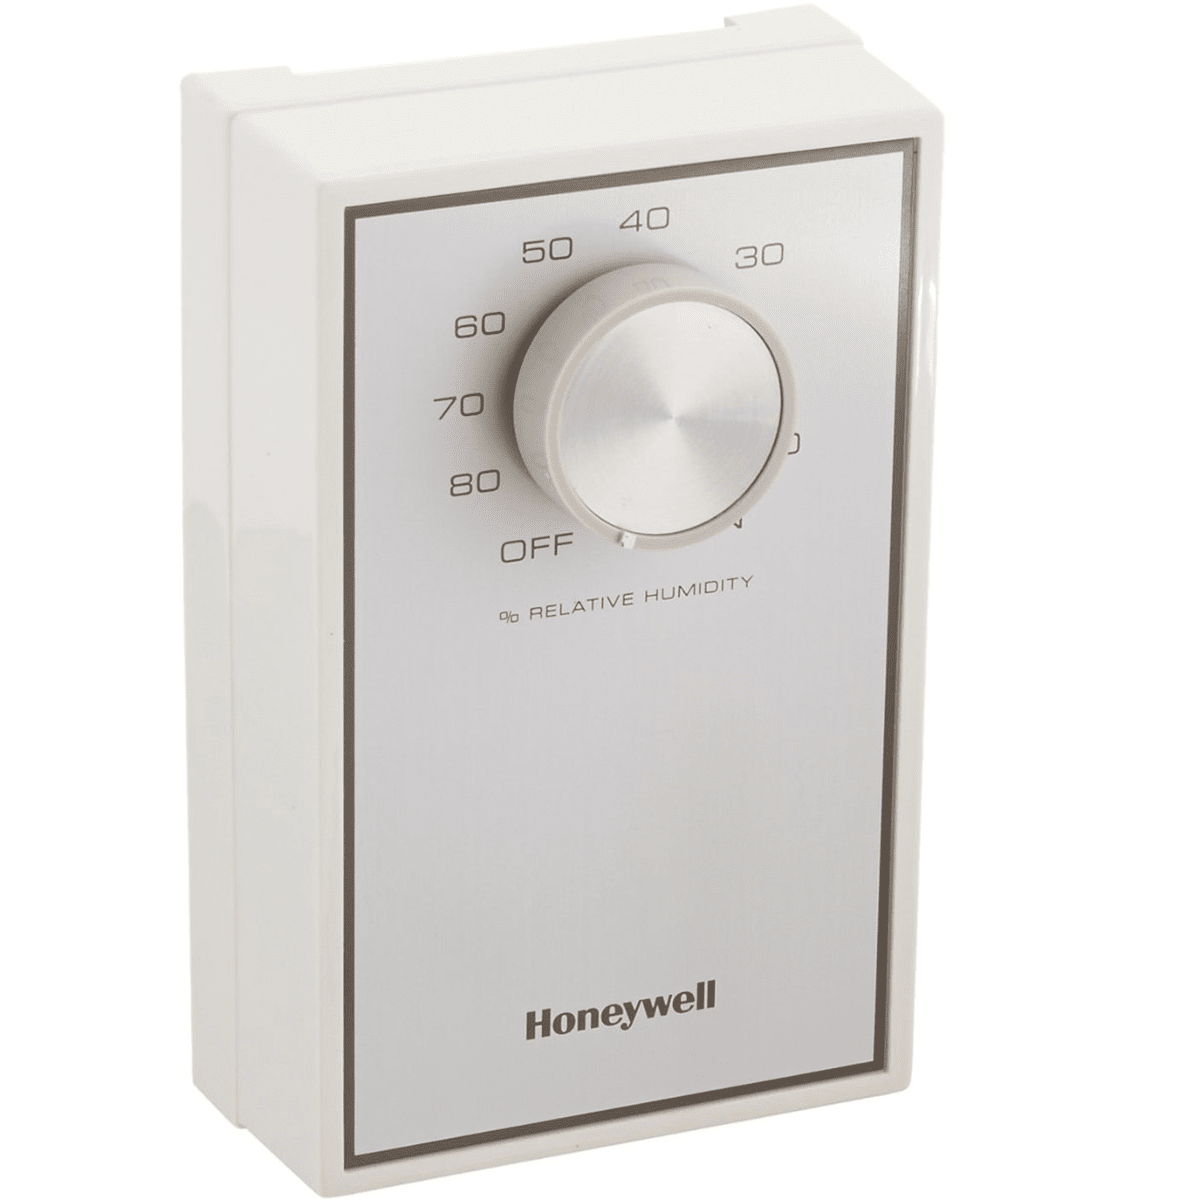 Iq Air Filters >> Honeywell H46C 1166 Wall Mounted Humidistat (4020175 ...